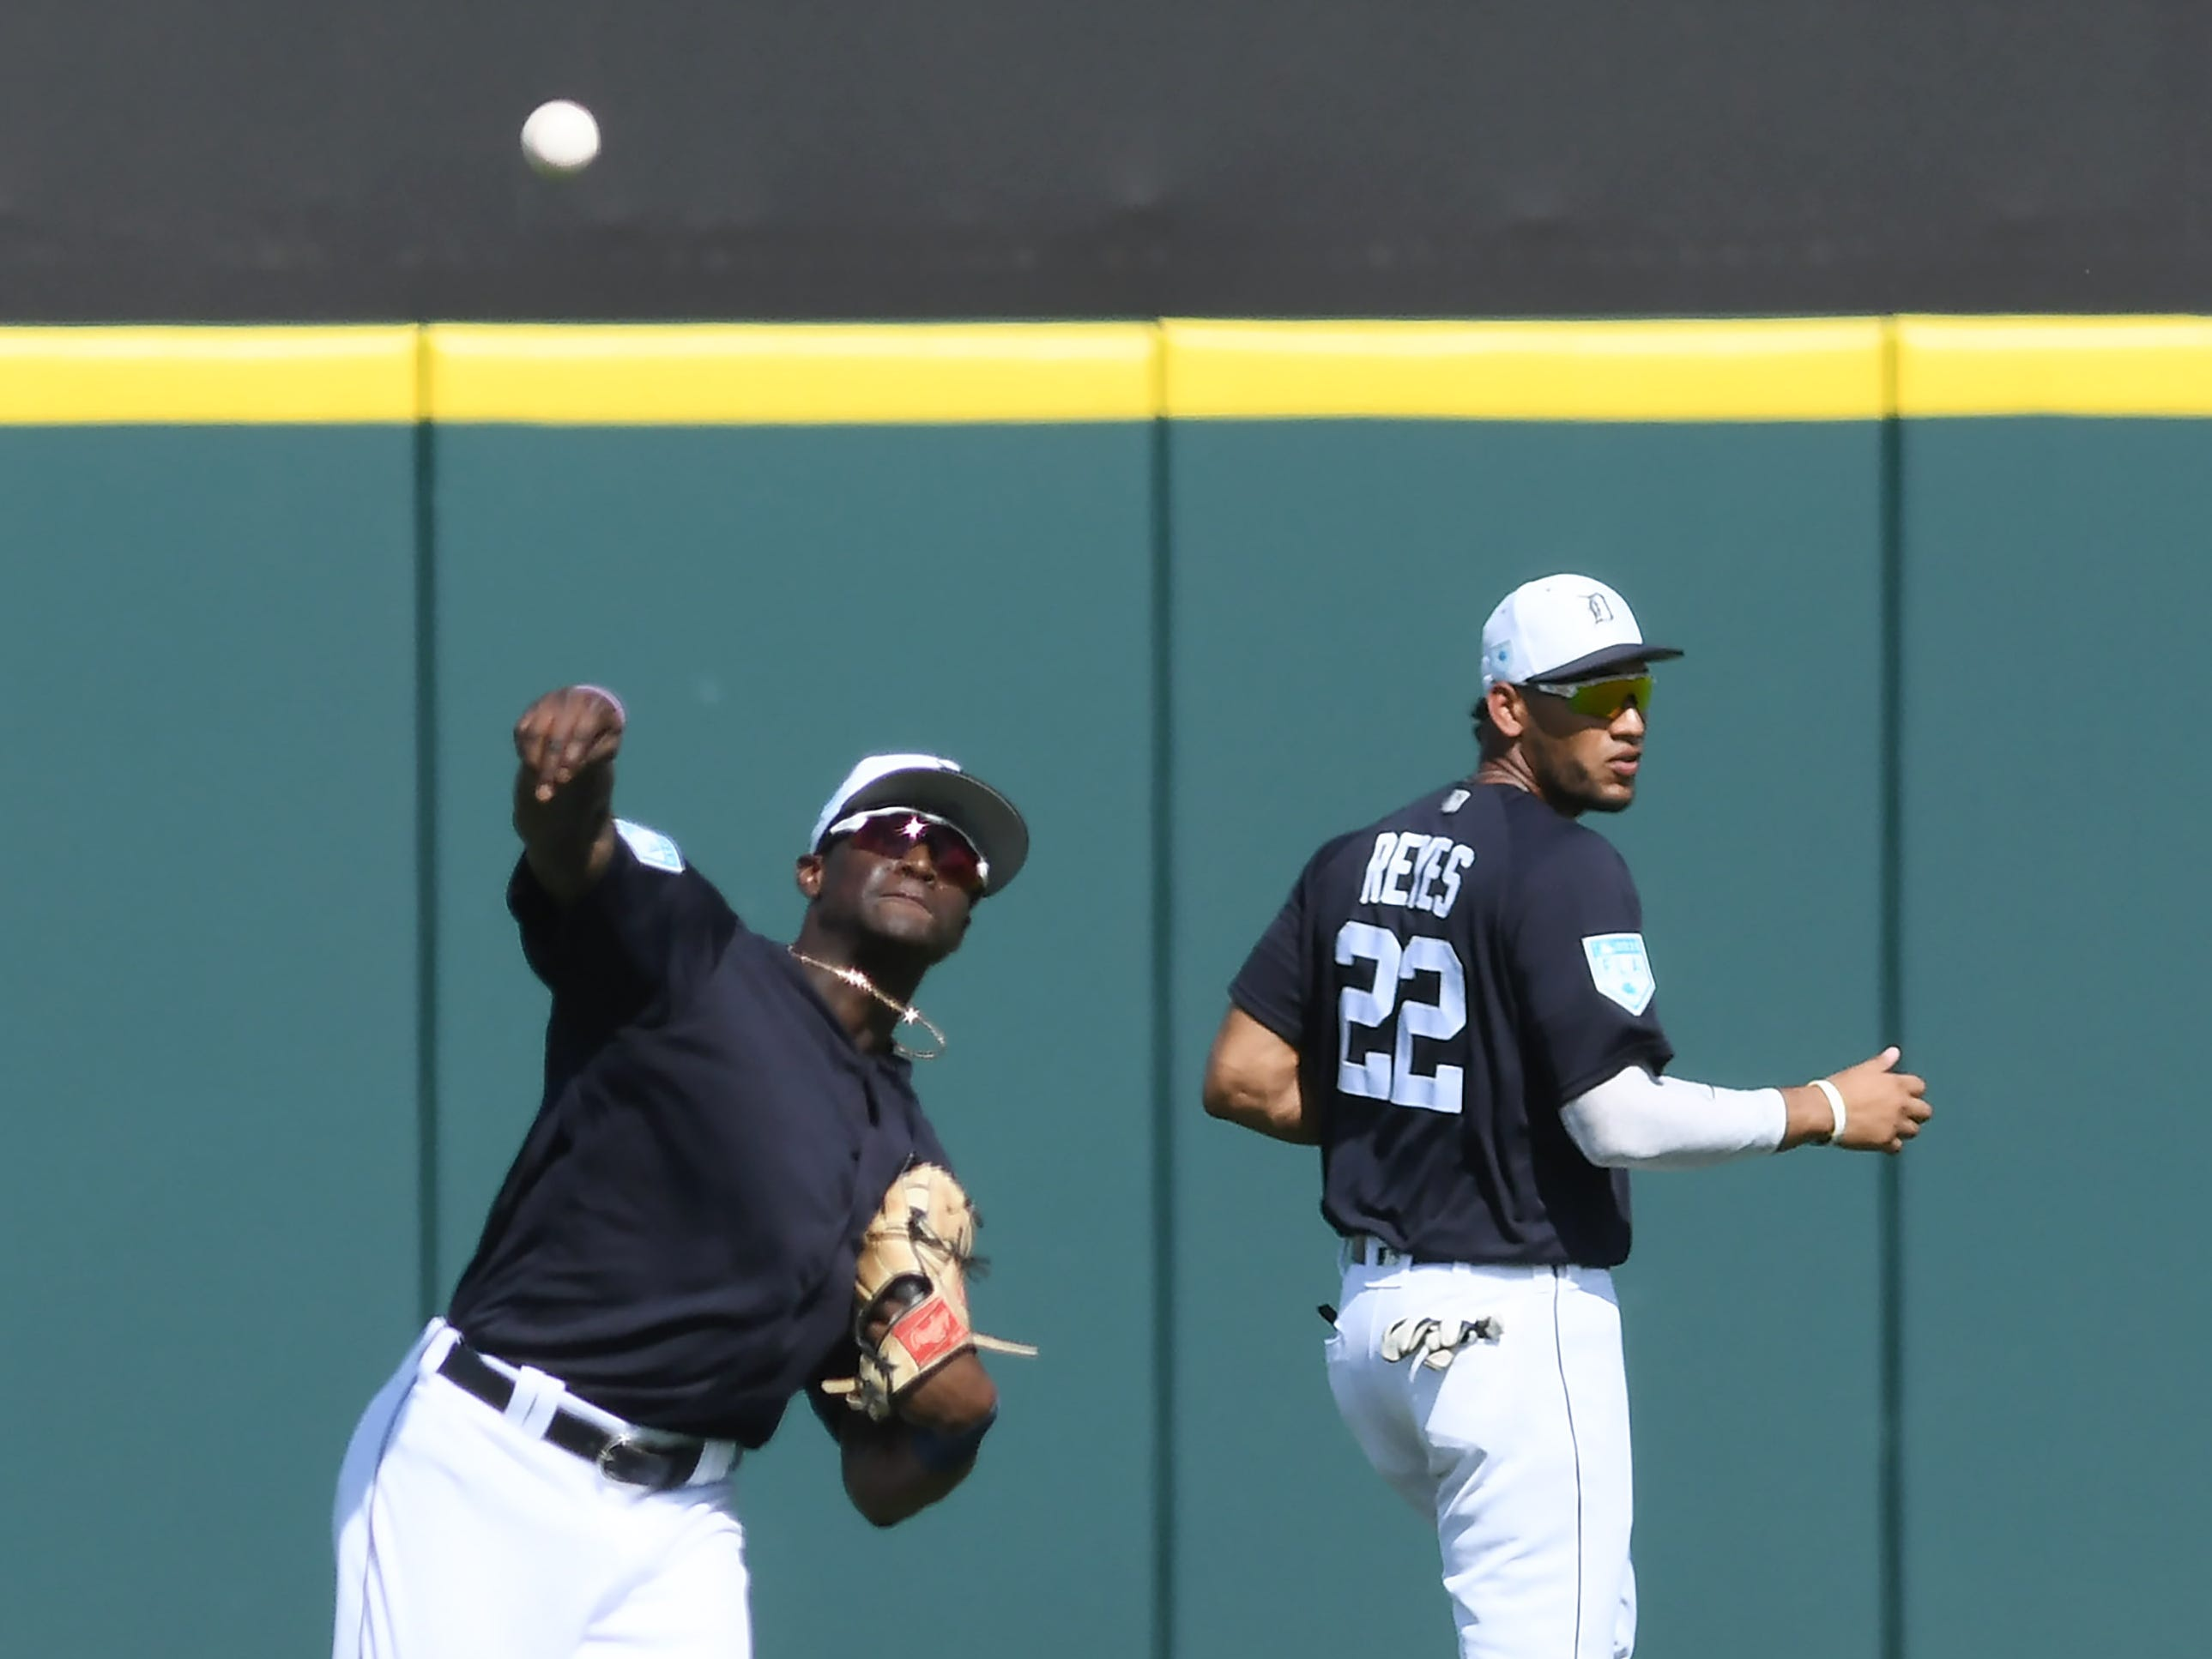 Next to right fielder Victor Reyes (22), Tigers non-roster invitee outfielder Daz Cameron throws the ball in after a hit in the fourth inning.